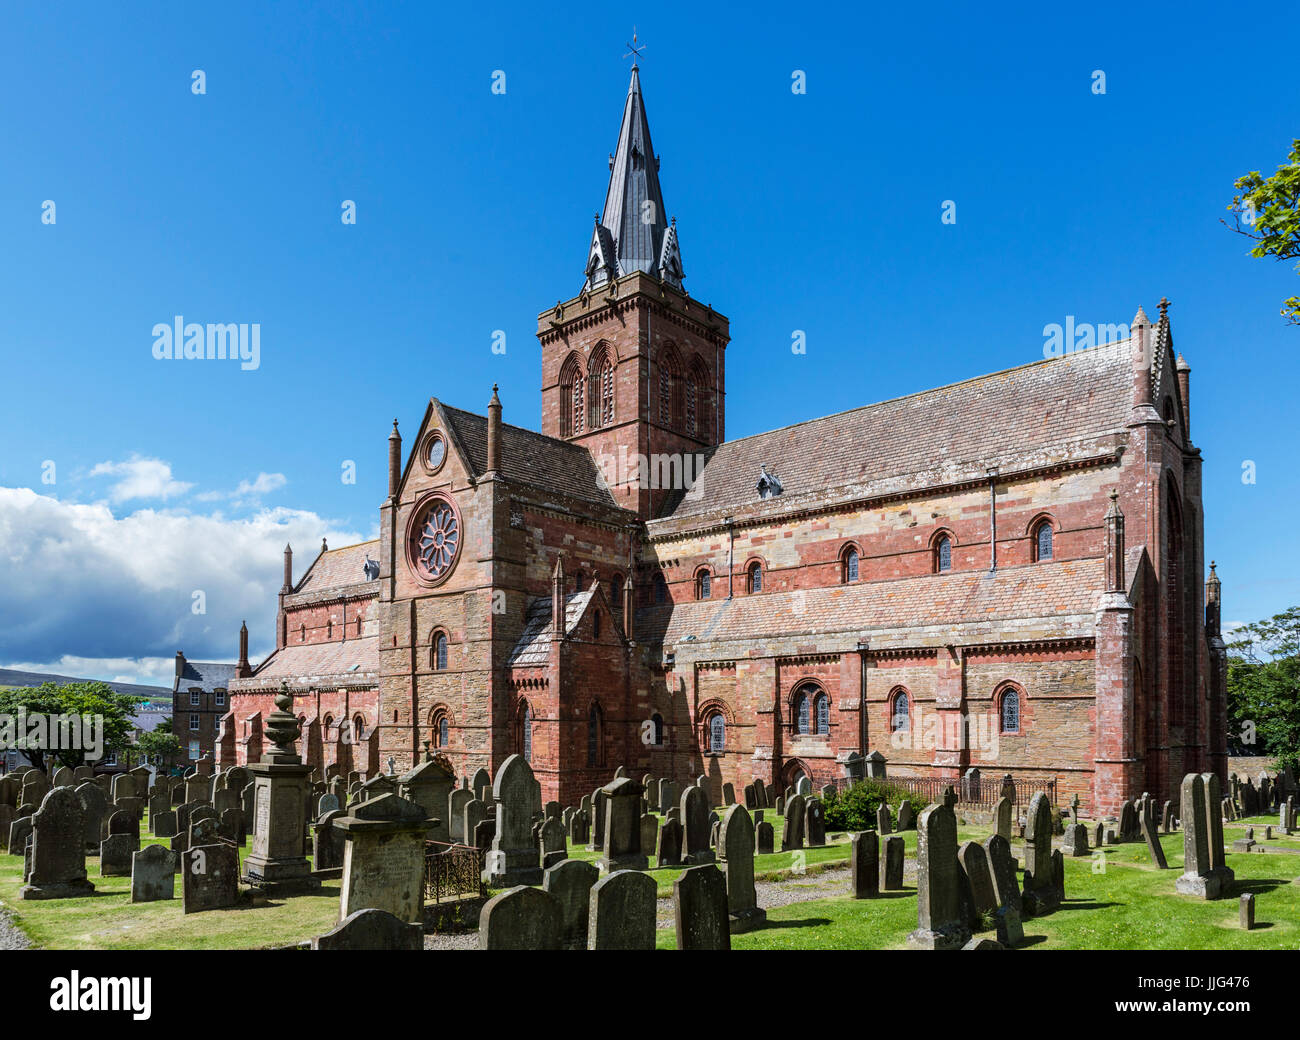 St Magnus Cathedral, Kirkwall, Mainland, Orkney, Scotland, UK - Stock Image